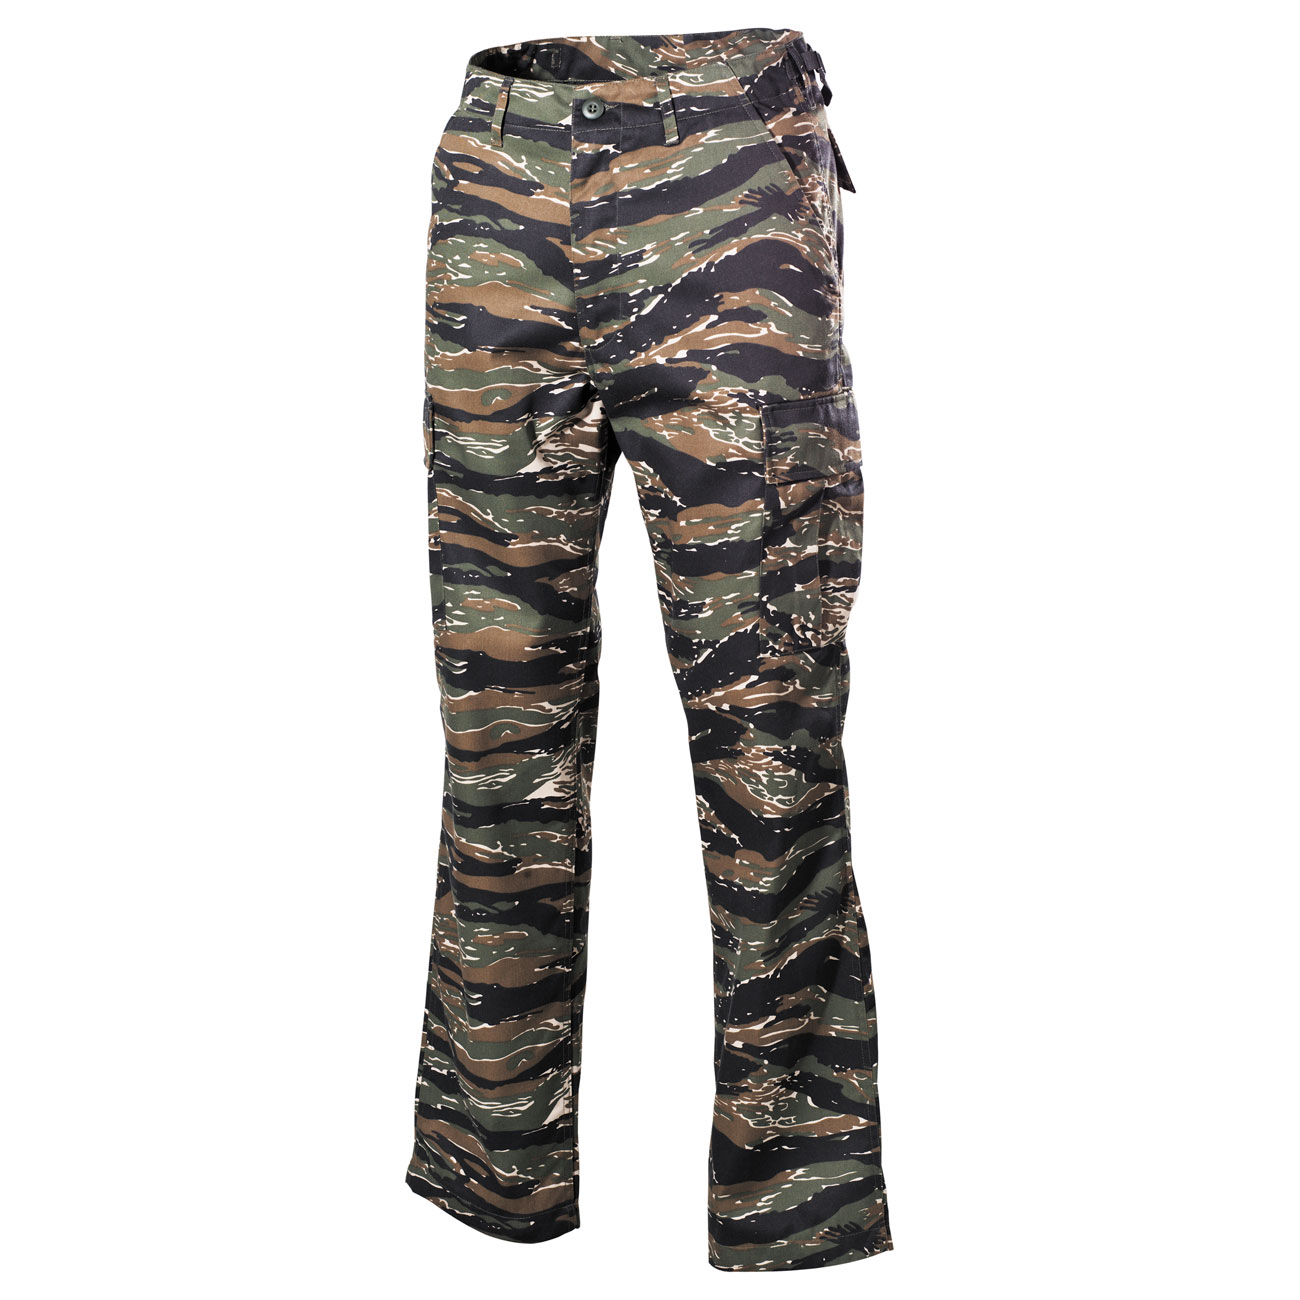 MFH US Army Hose BDU tiger stripe 0